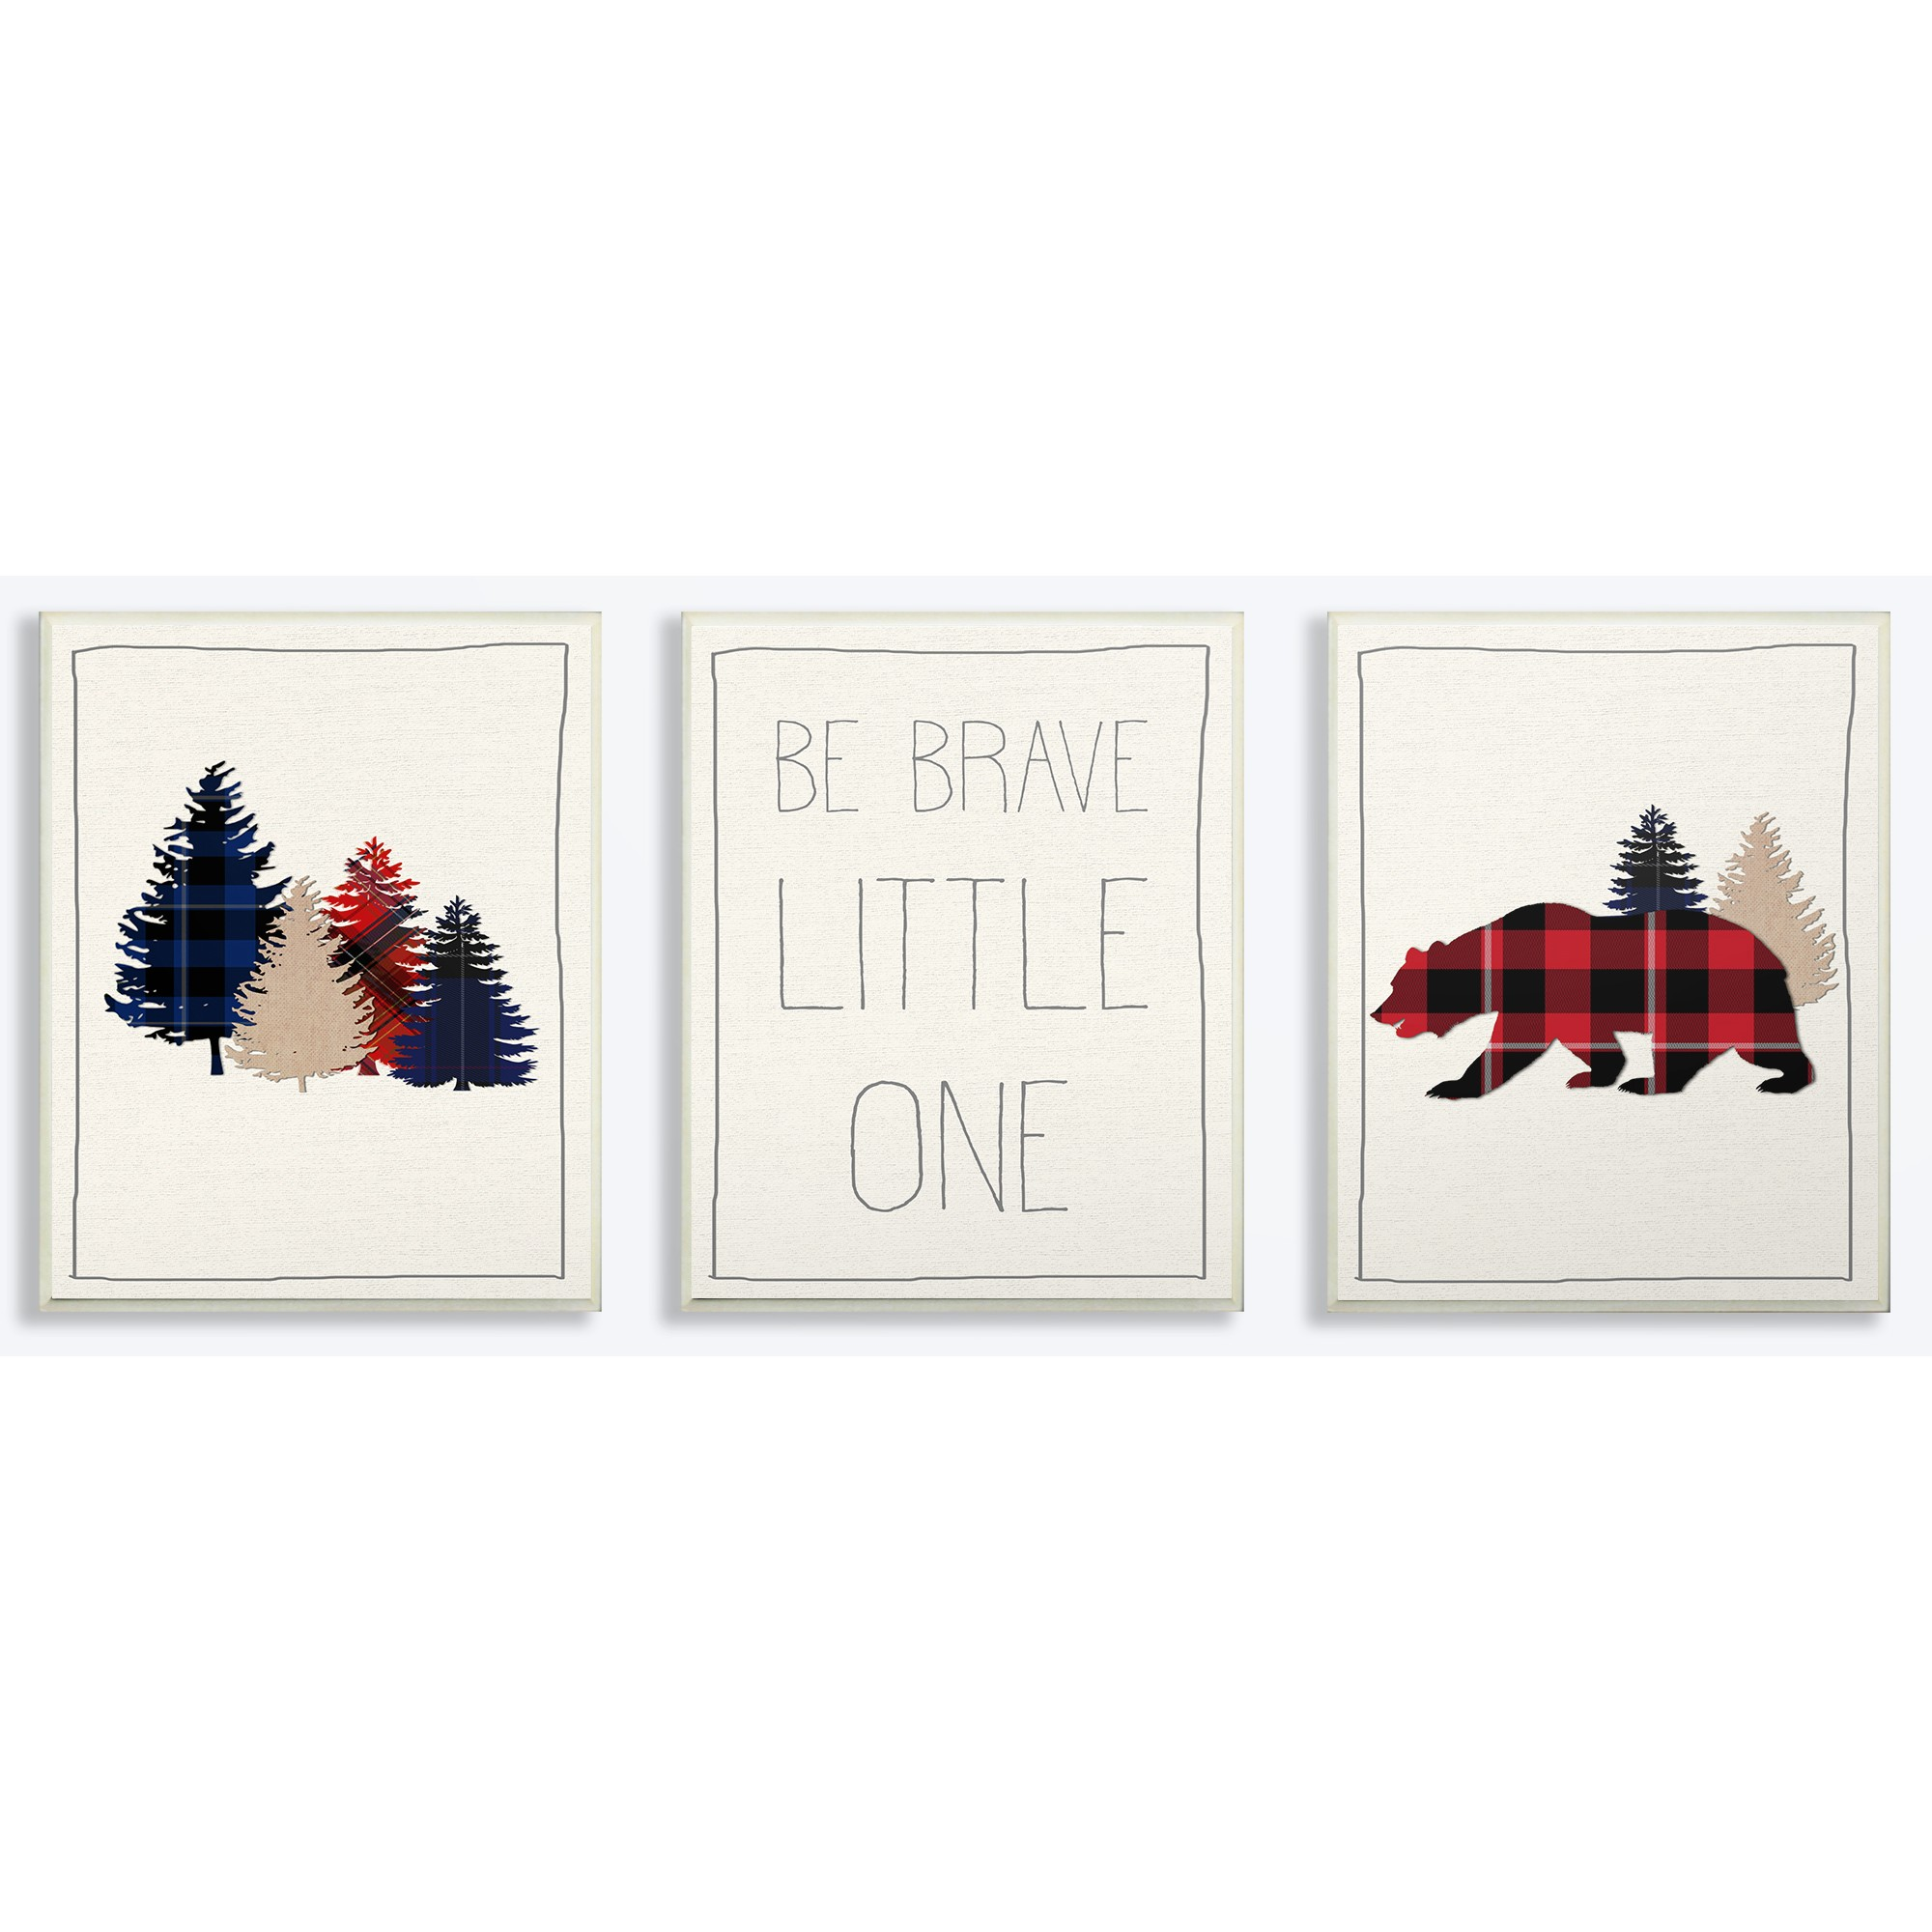 The Kids Room by Stupell Be Brave Little One Plaid Trees And Bear 3pc Wall Plaque Art Set, 3pc, each 10 x 0.5 x 15